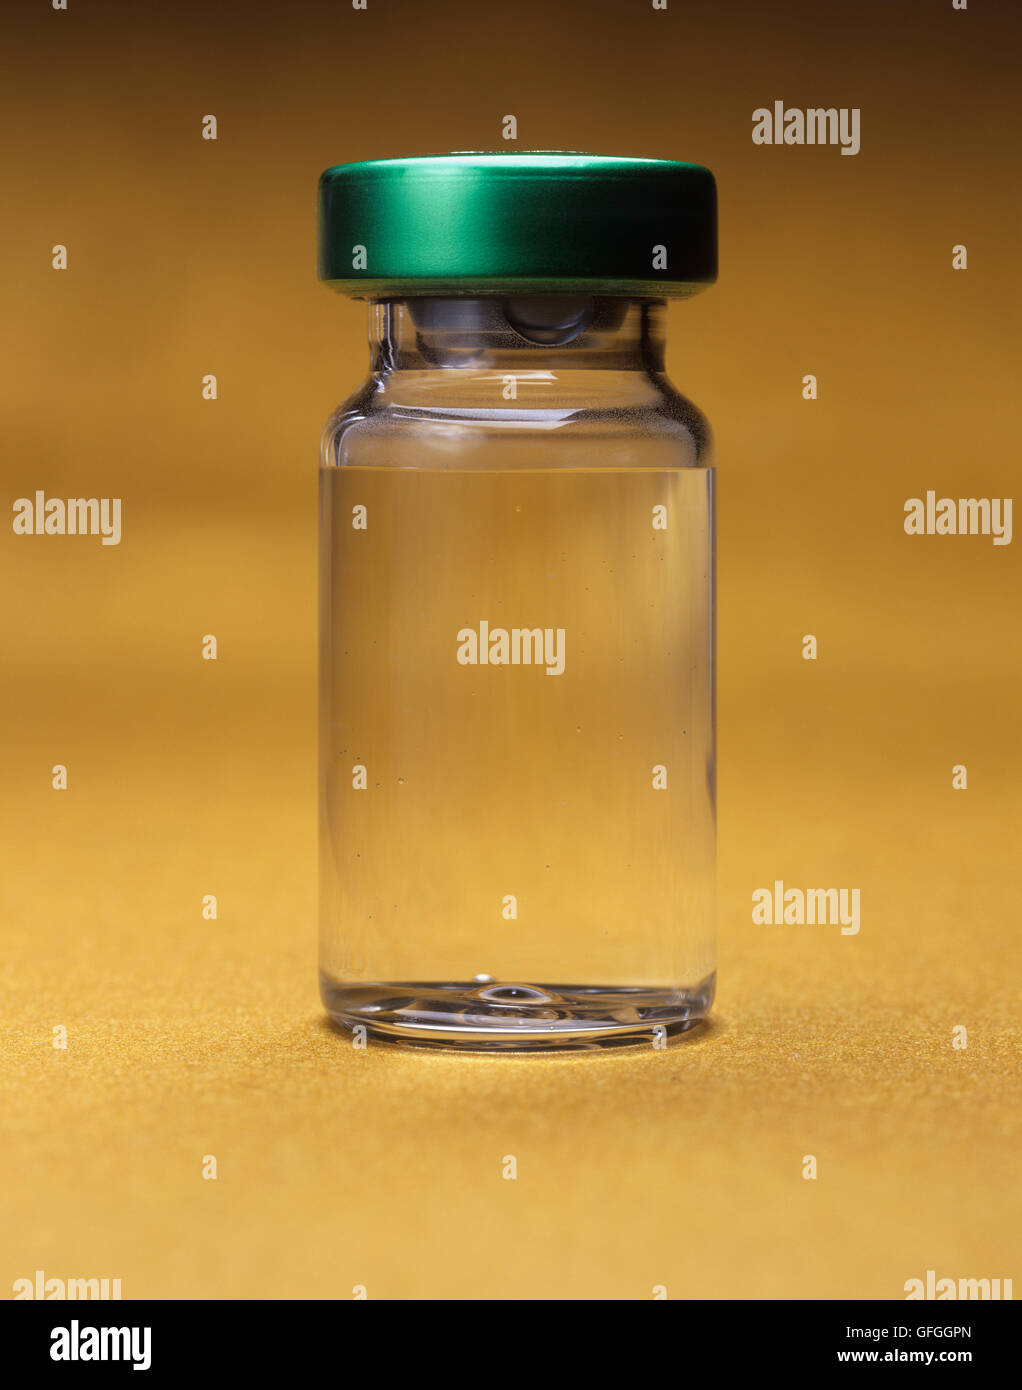 Product shot a generic glass vial - Stock Image